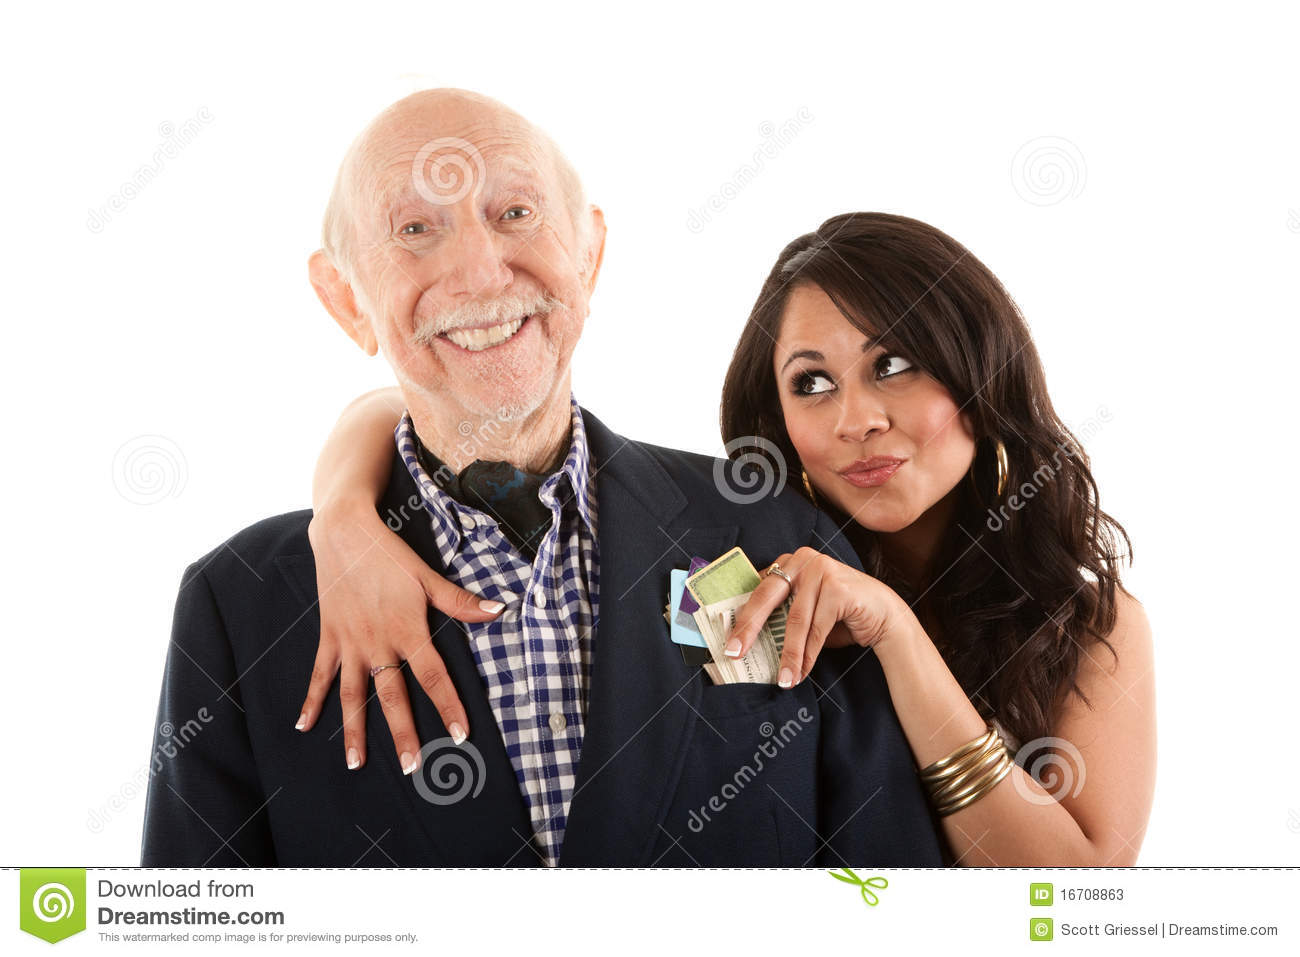 Man with gold-digger companion or wife